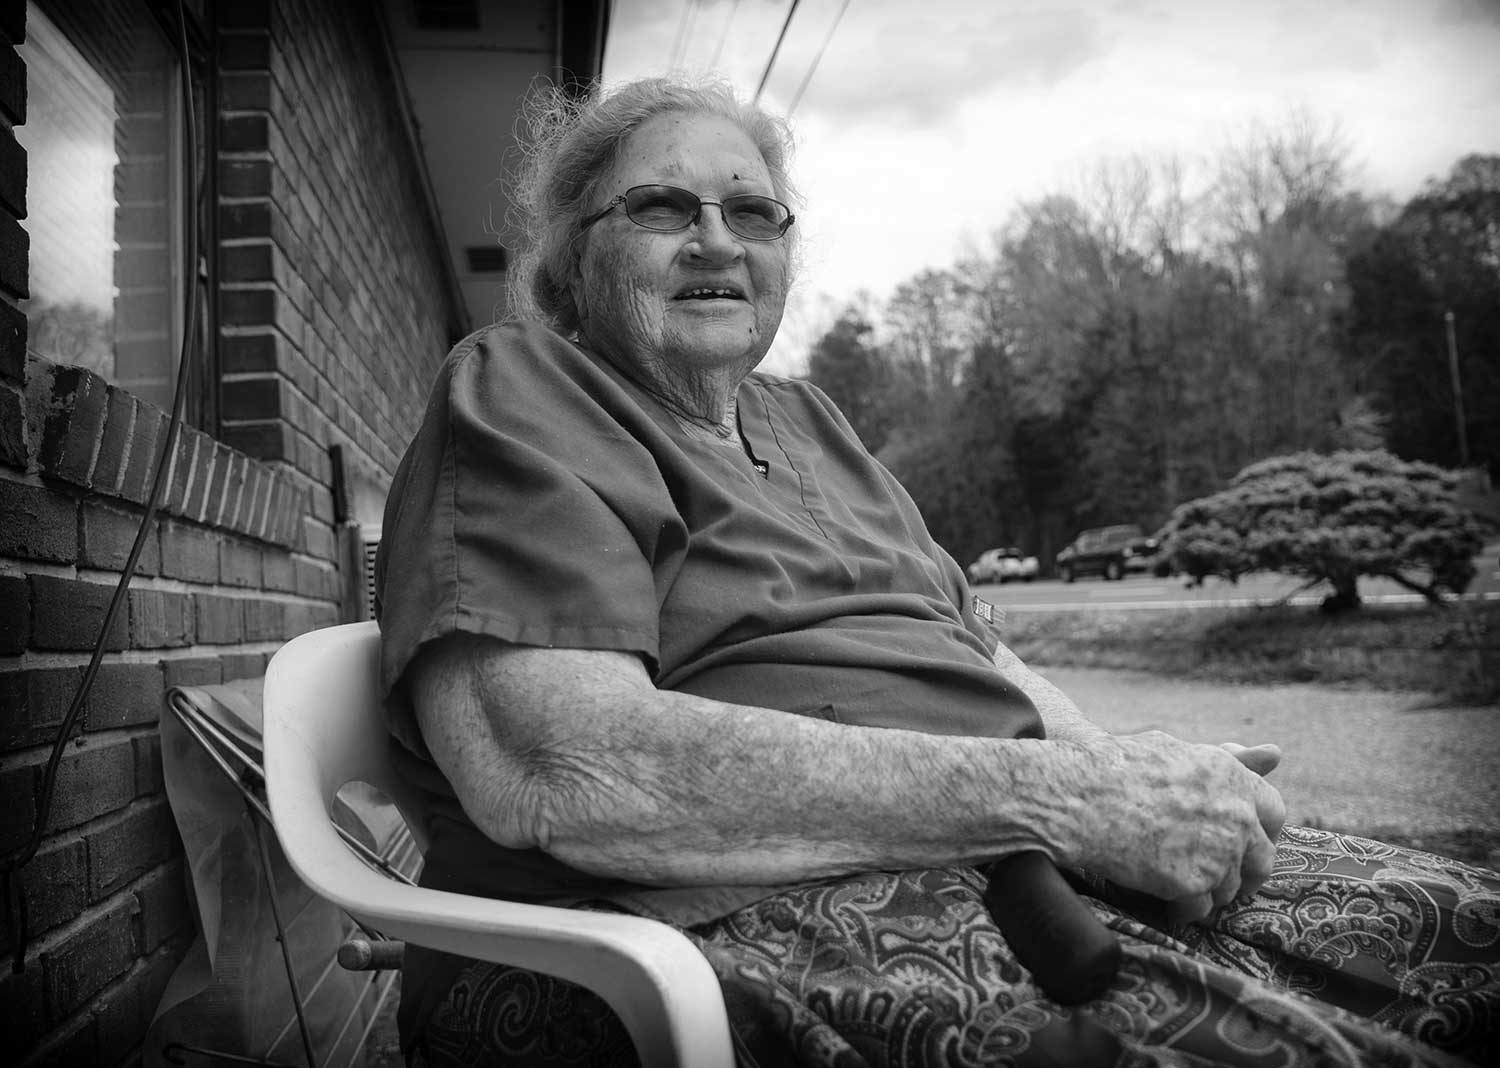 Florene Brown enjoys the day relaxing on her friend's front porch on the Old Jacksboro Highway. photo by Caitlyn Jordan - 2019